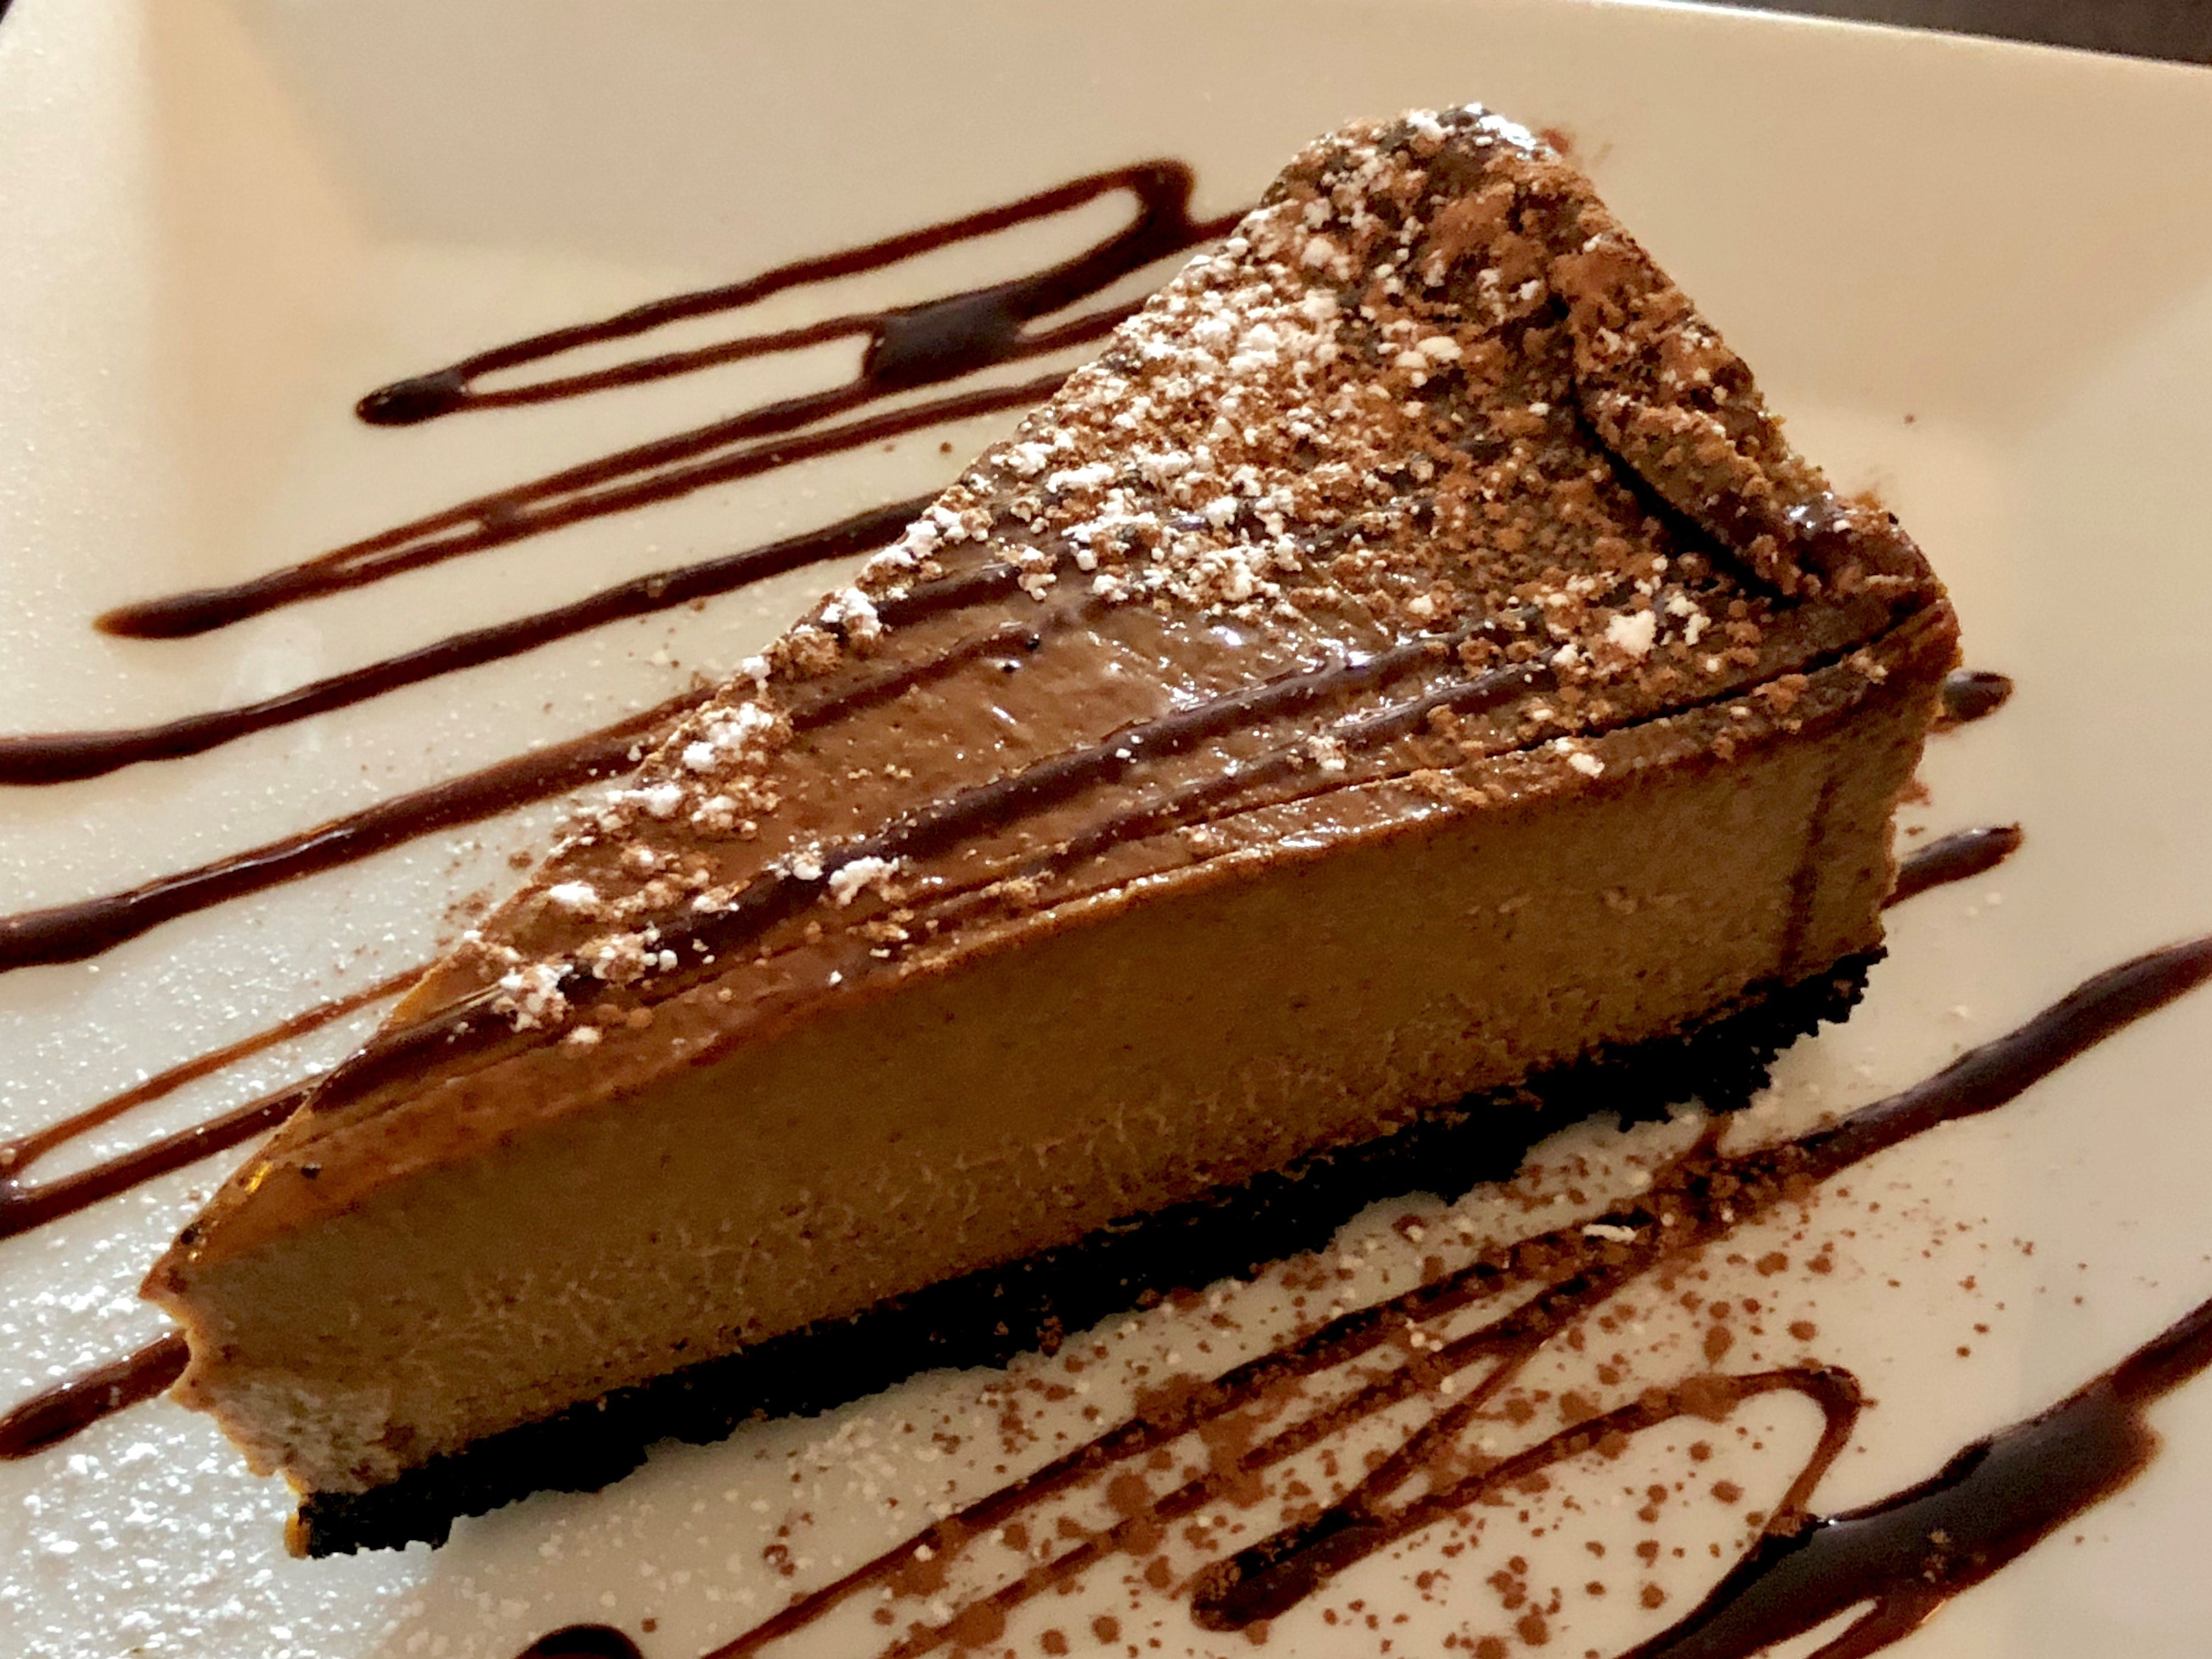 A wedge of coffee-infused flan from La Trattoria Cafe Napoli in south Fort Myers.